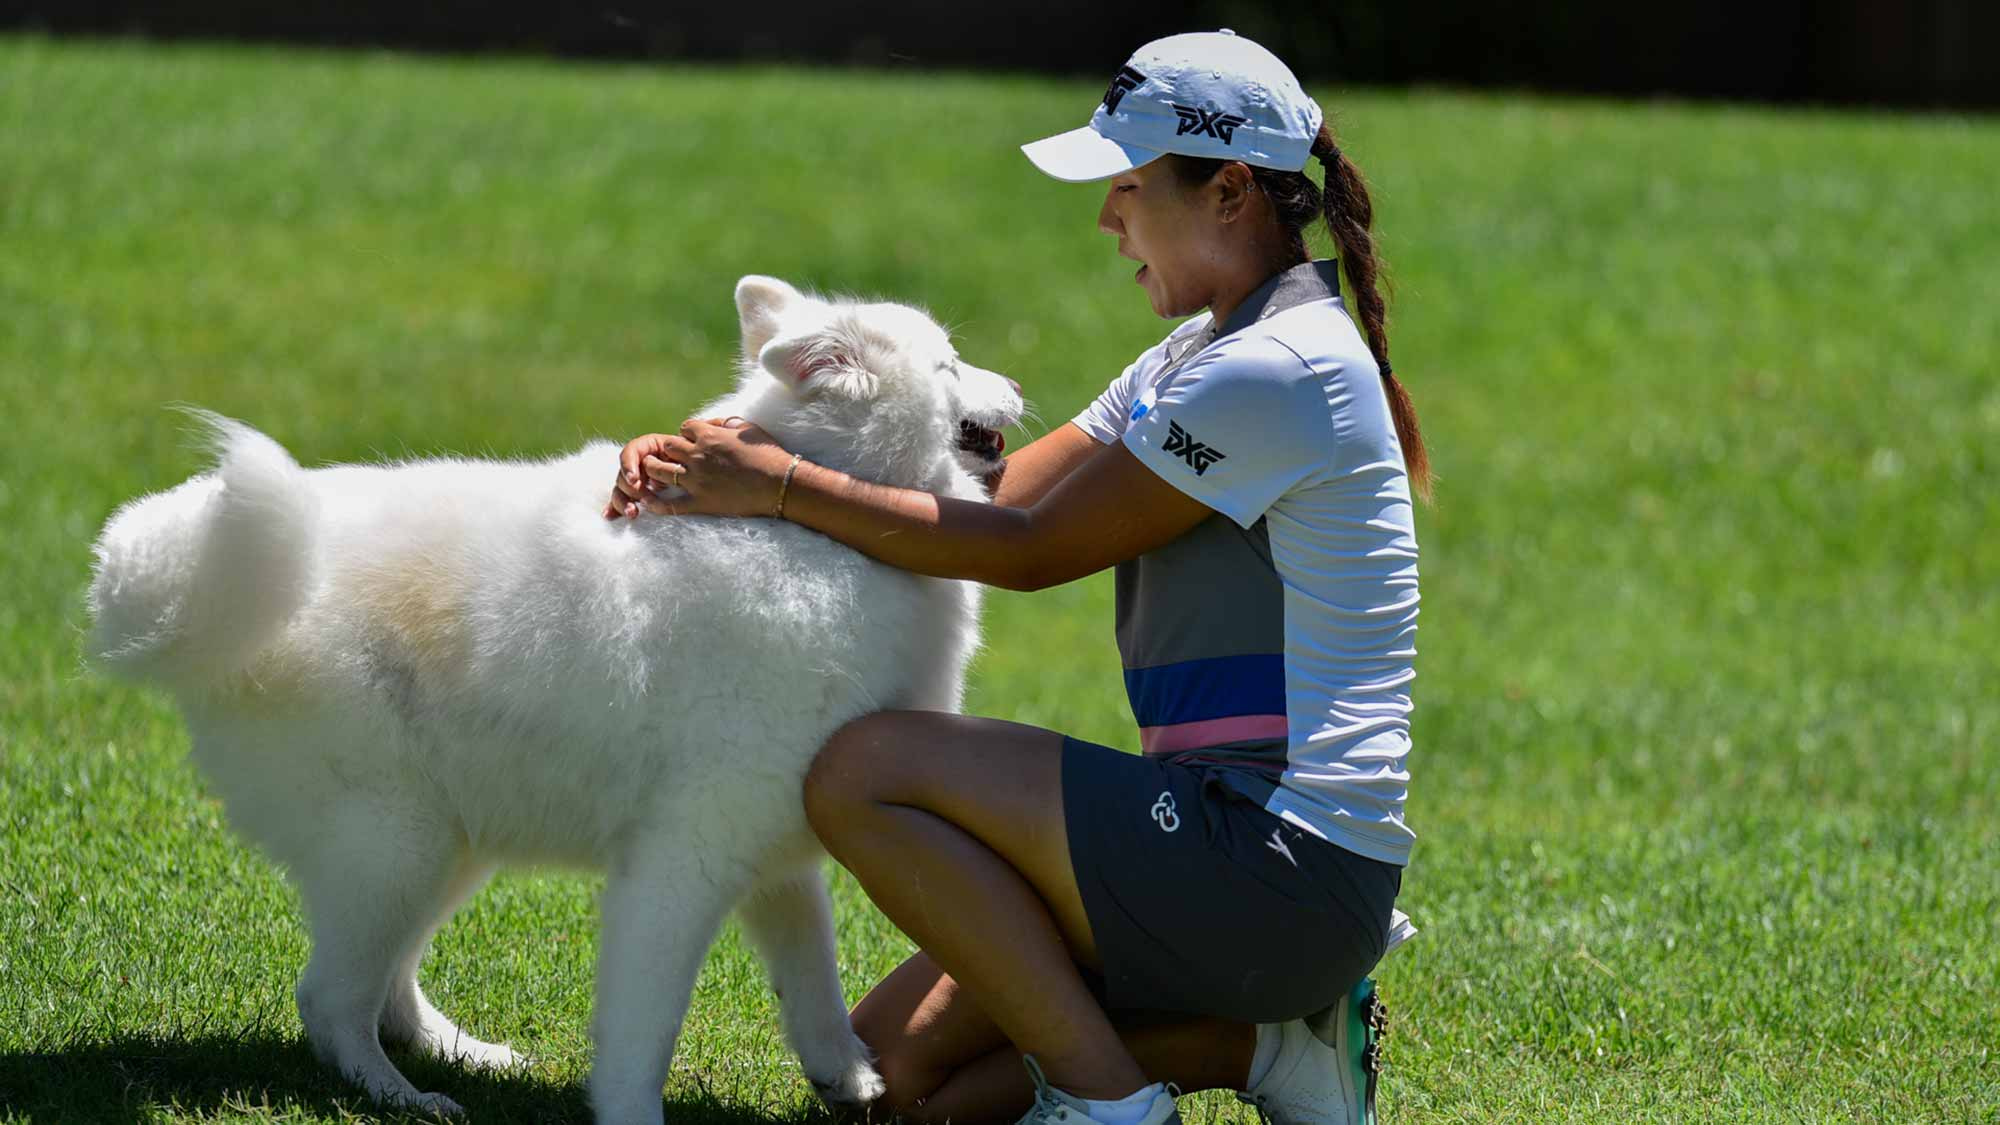 Defending champion Lydia Ko makes friends with a dog on-site at the 2017 Walmart NW Arkansas Championship Presented by P&G